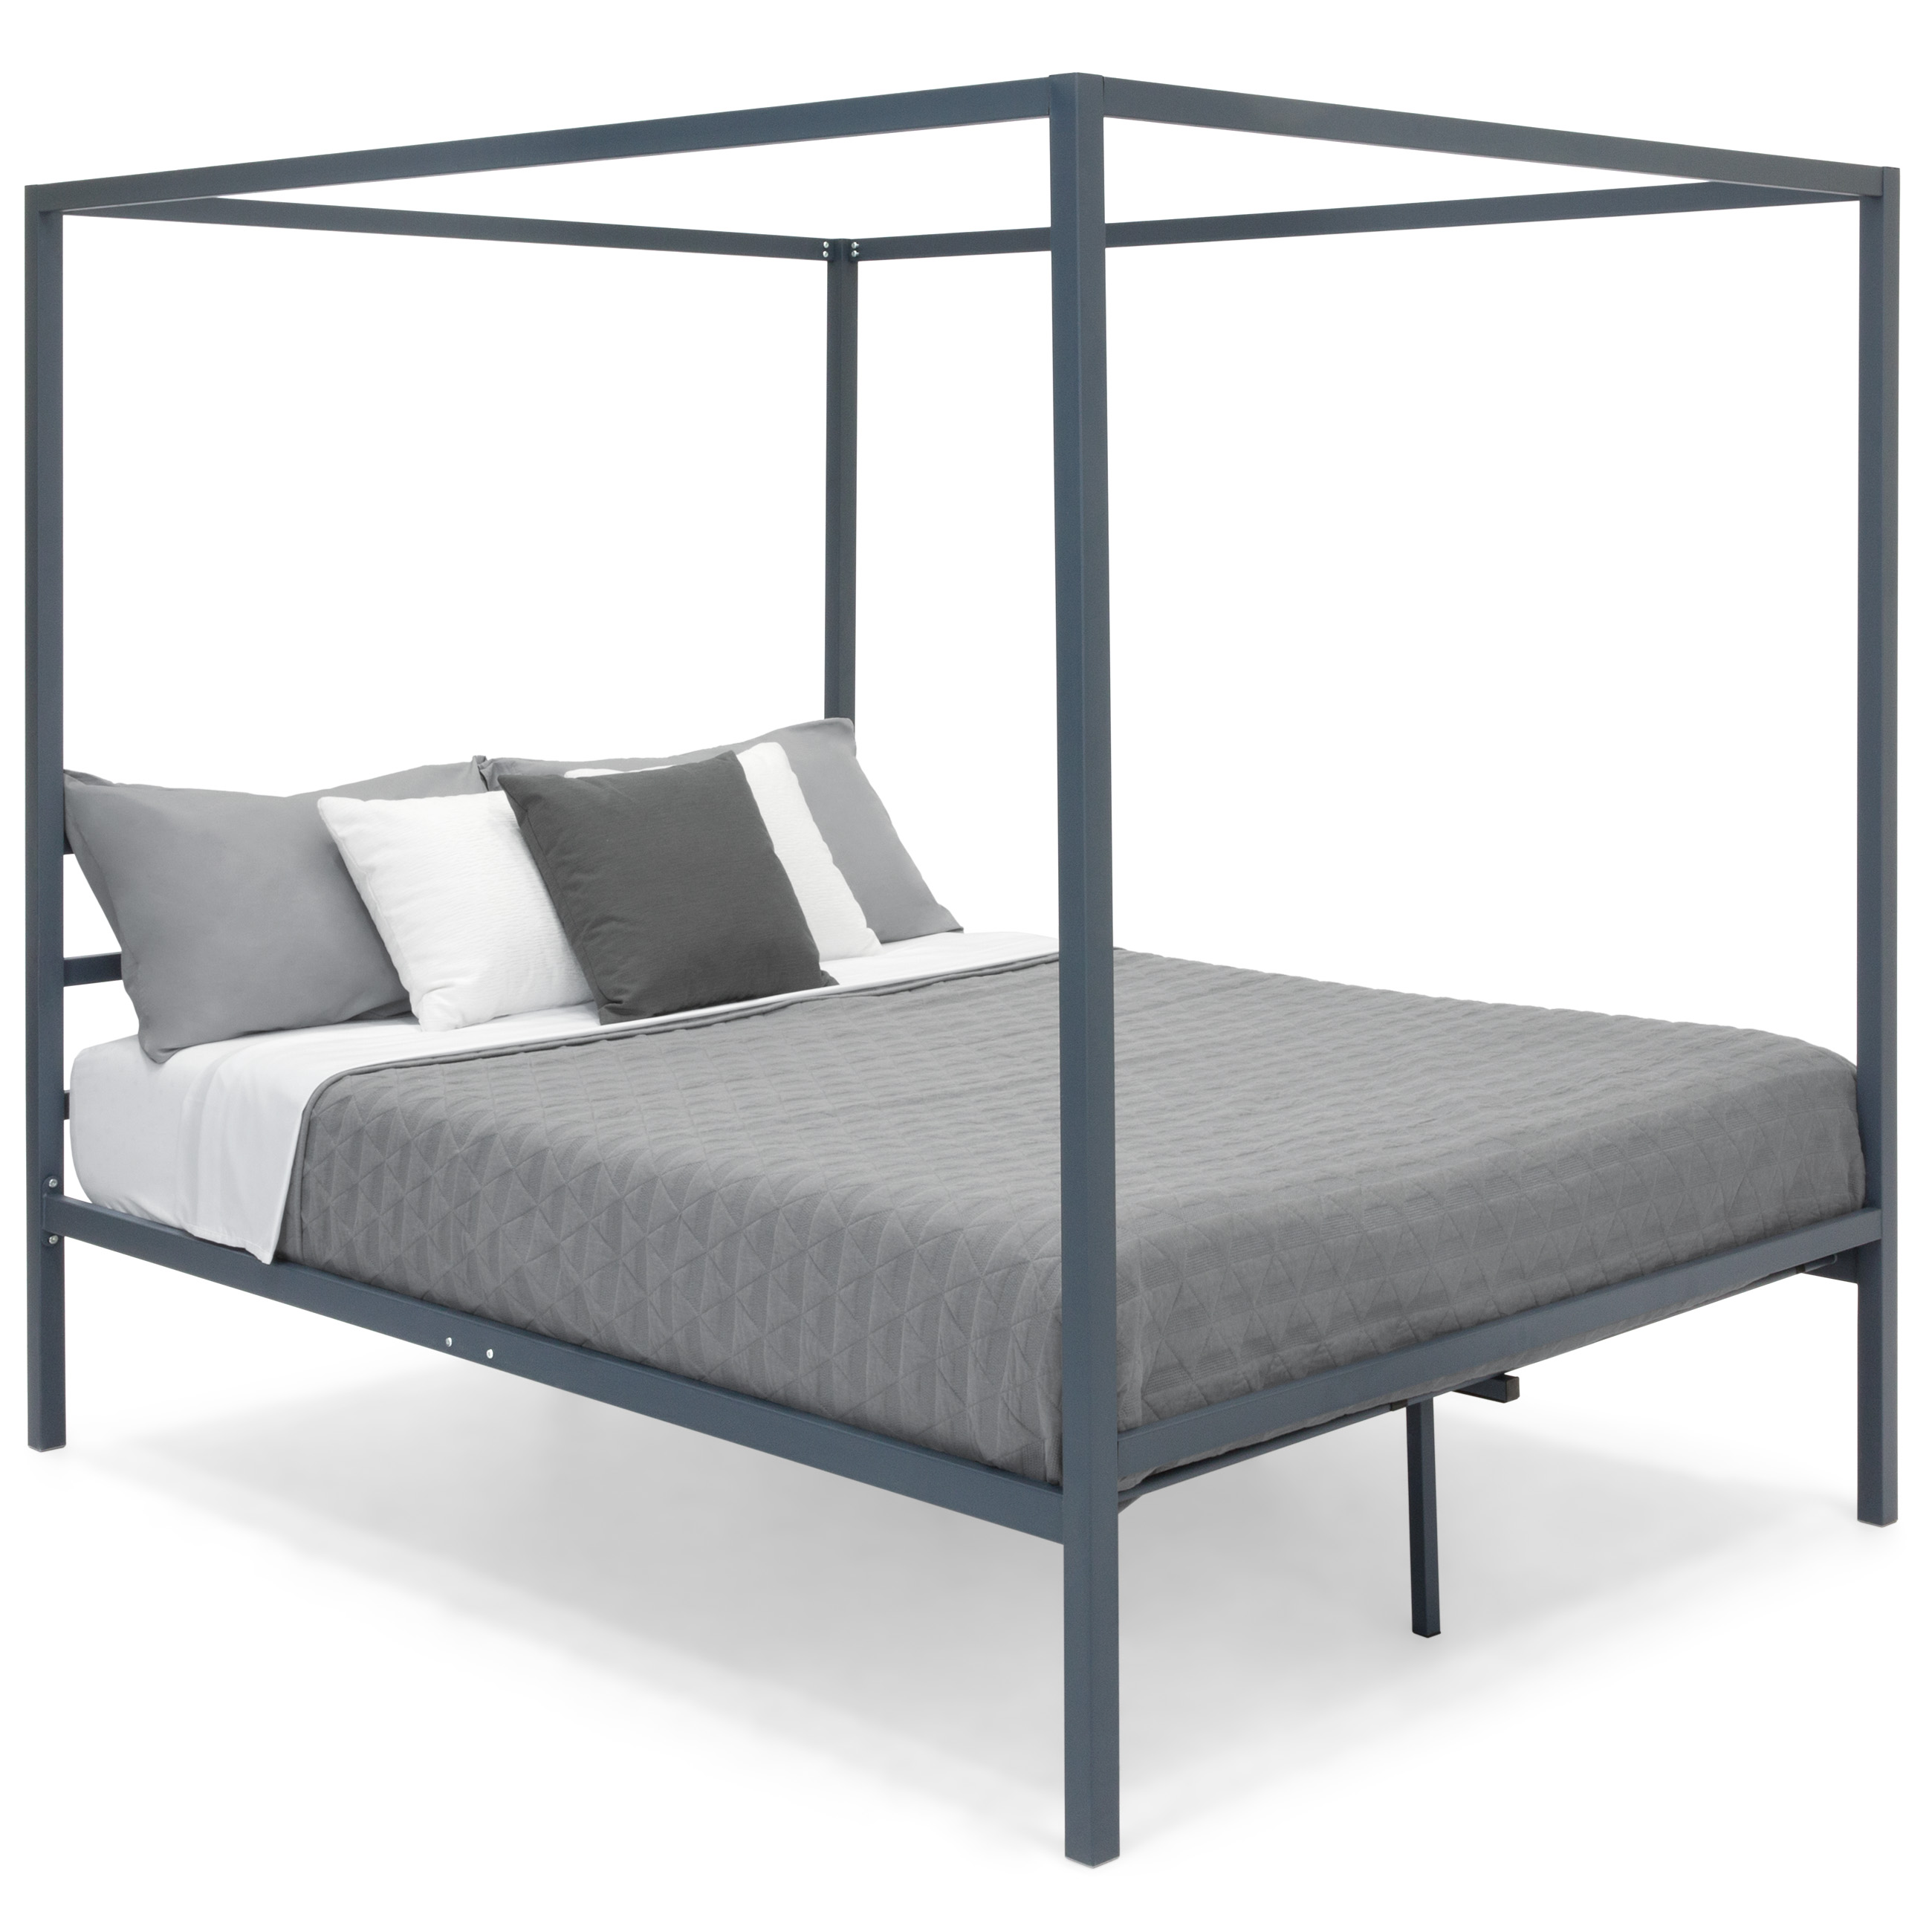 Best Choice Products Industrial 4 Corner Post Steel Canopy Queen Platform Bed Frame w/ Headboard, Metal Slats - Gray